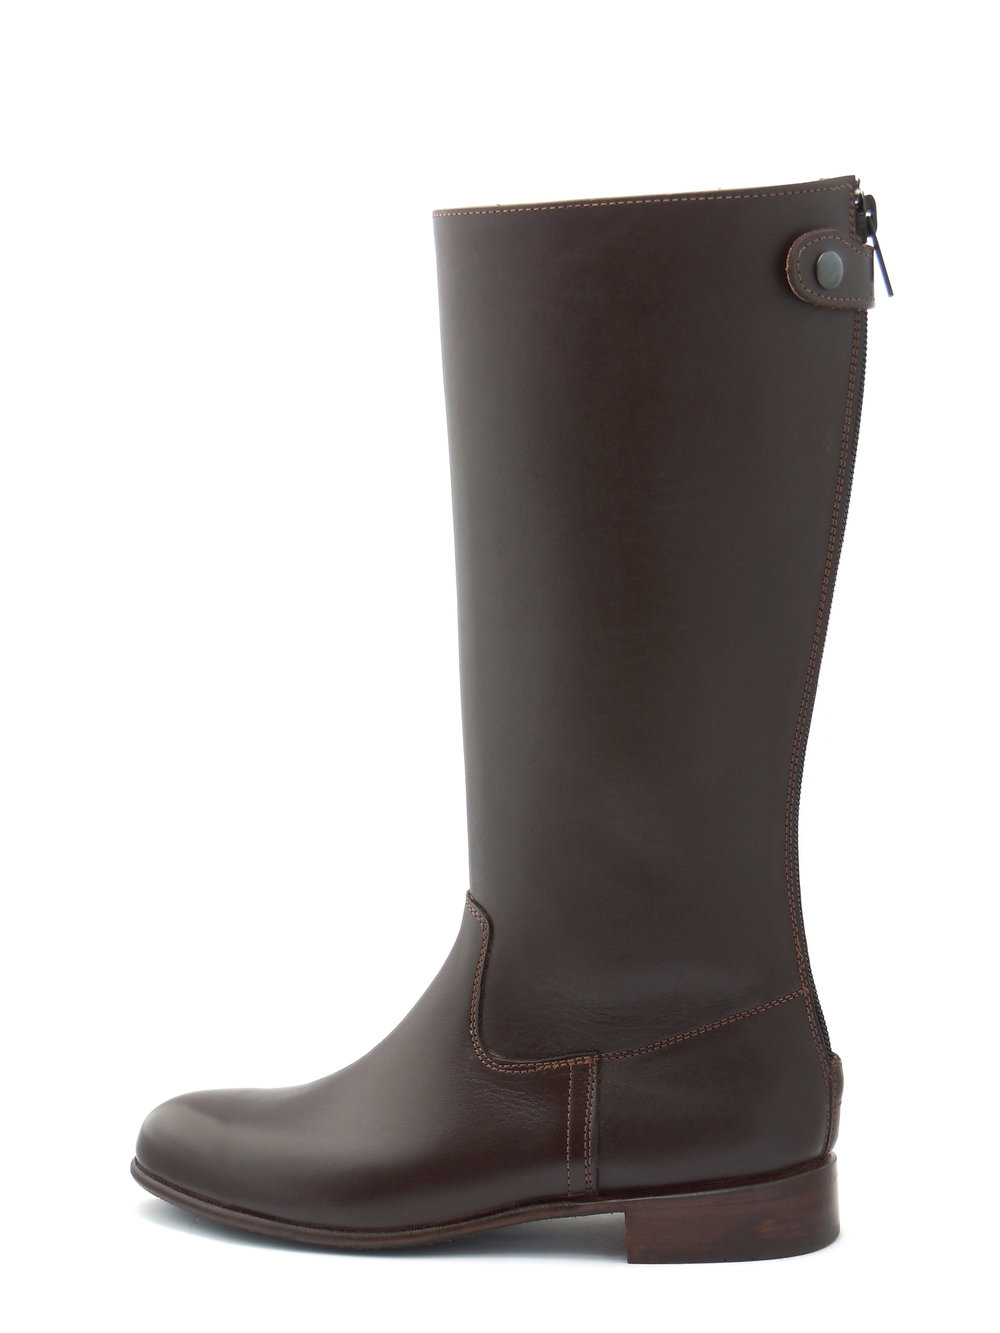 Polocrosse Boots with Flat Tops (Zip-Up)